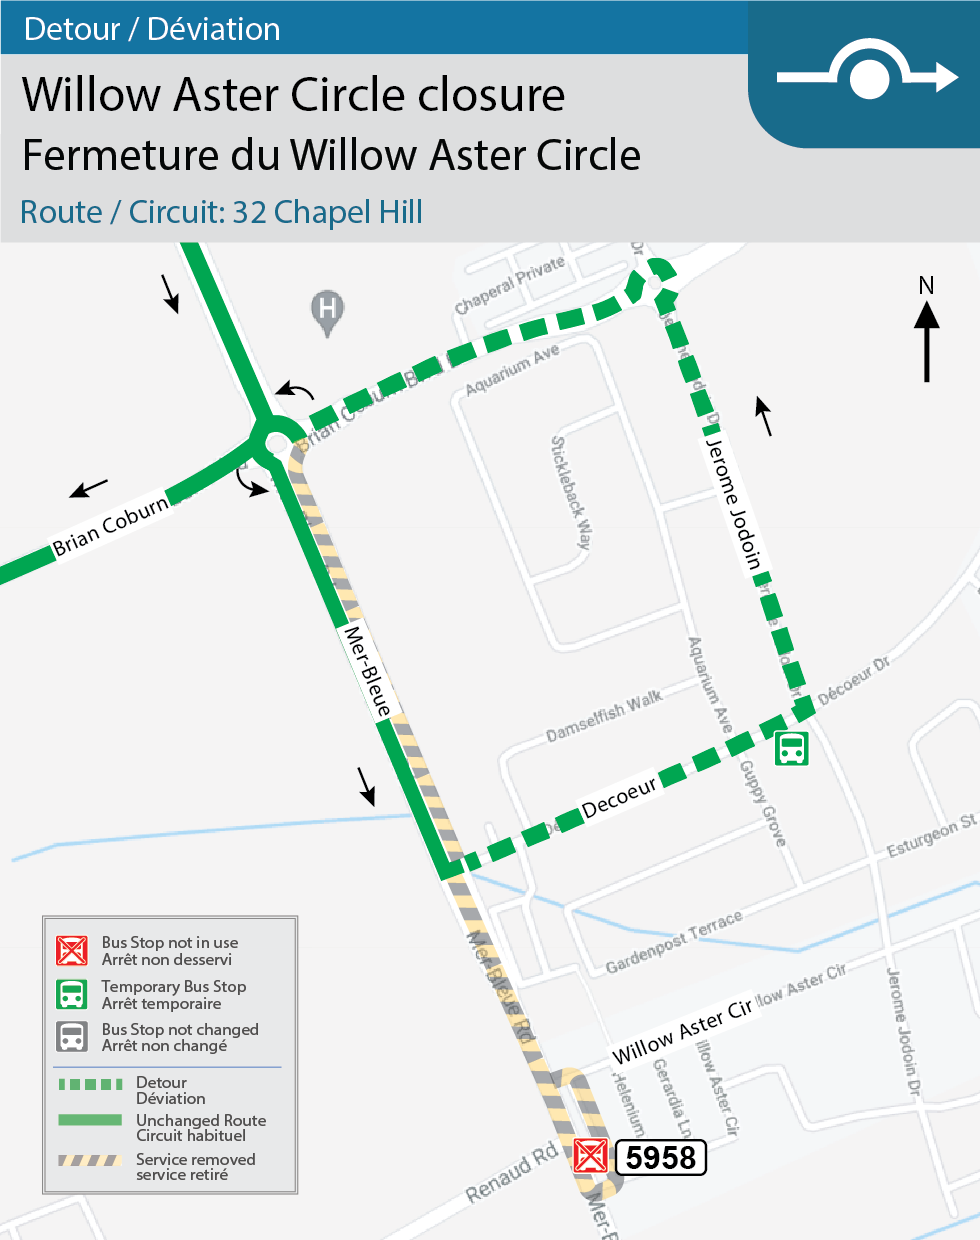 Map for Routes 32 Chapel Hill, Willow Aster Circle detour for construction